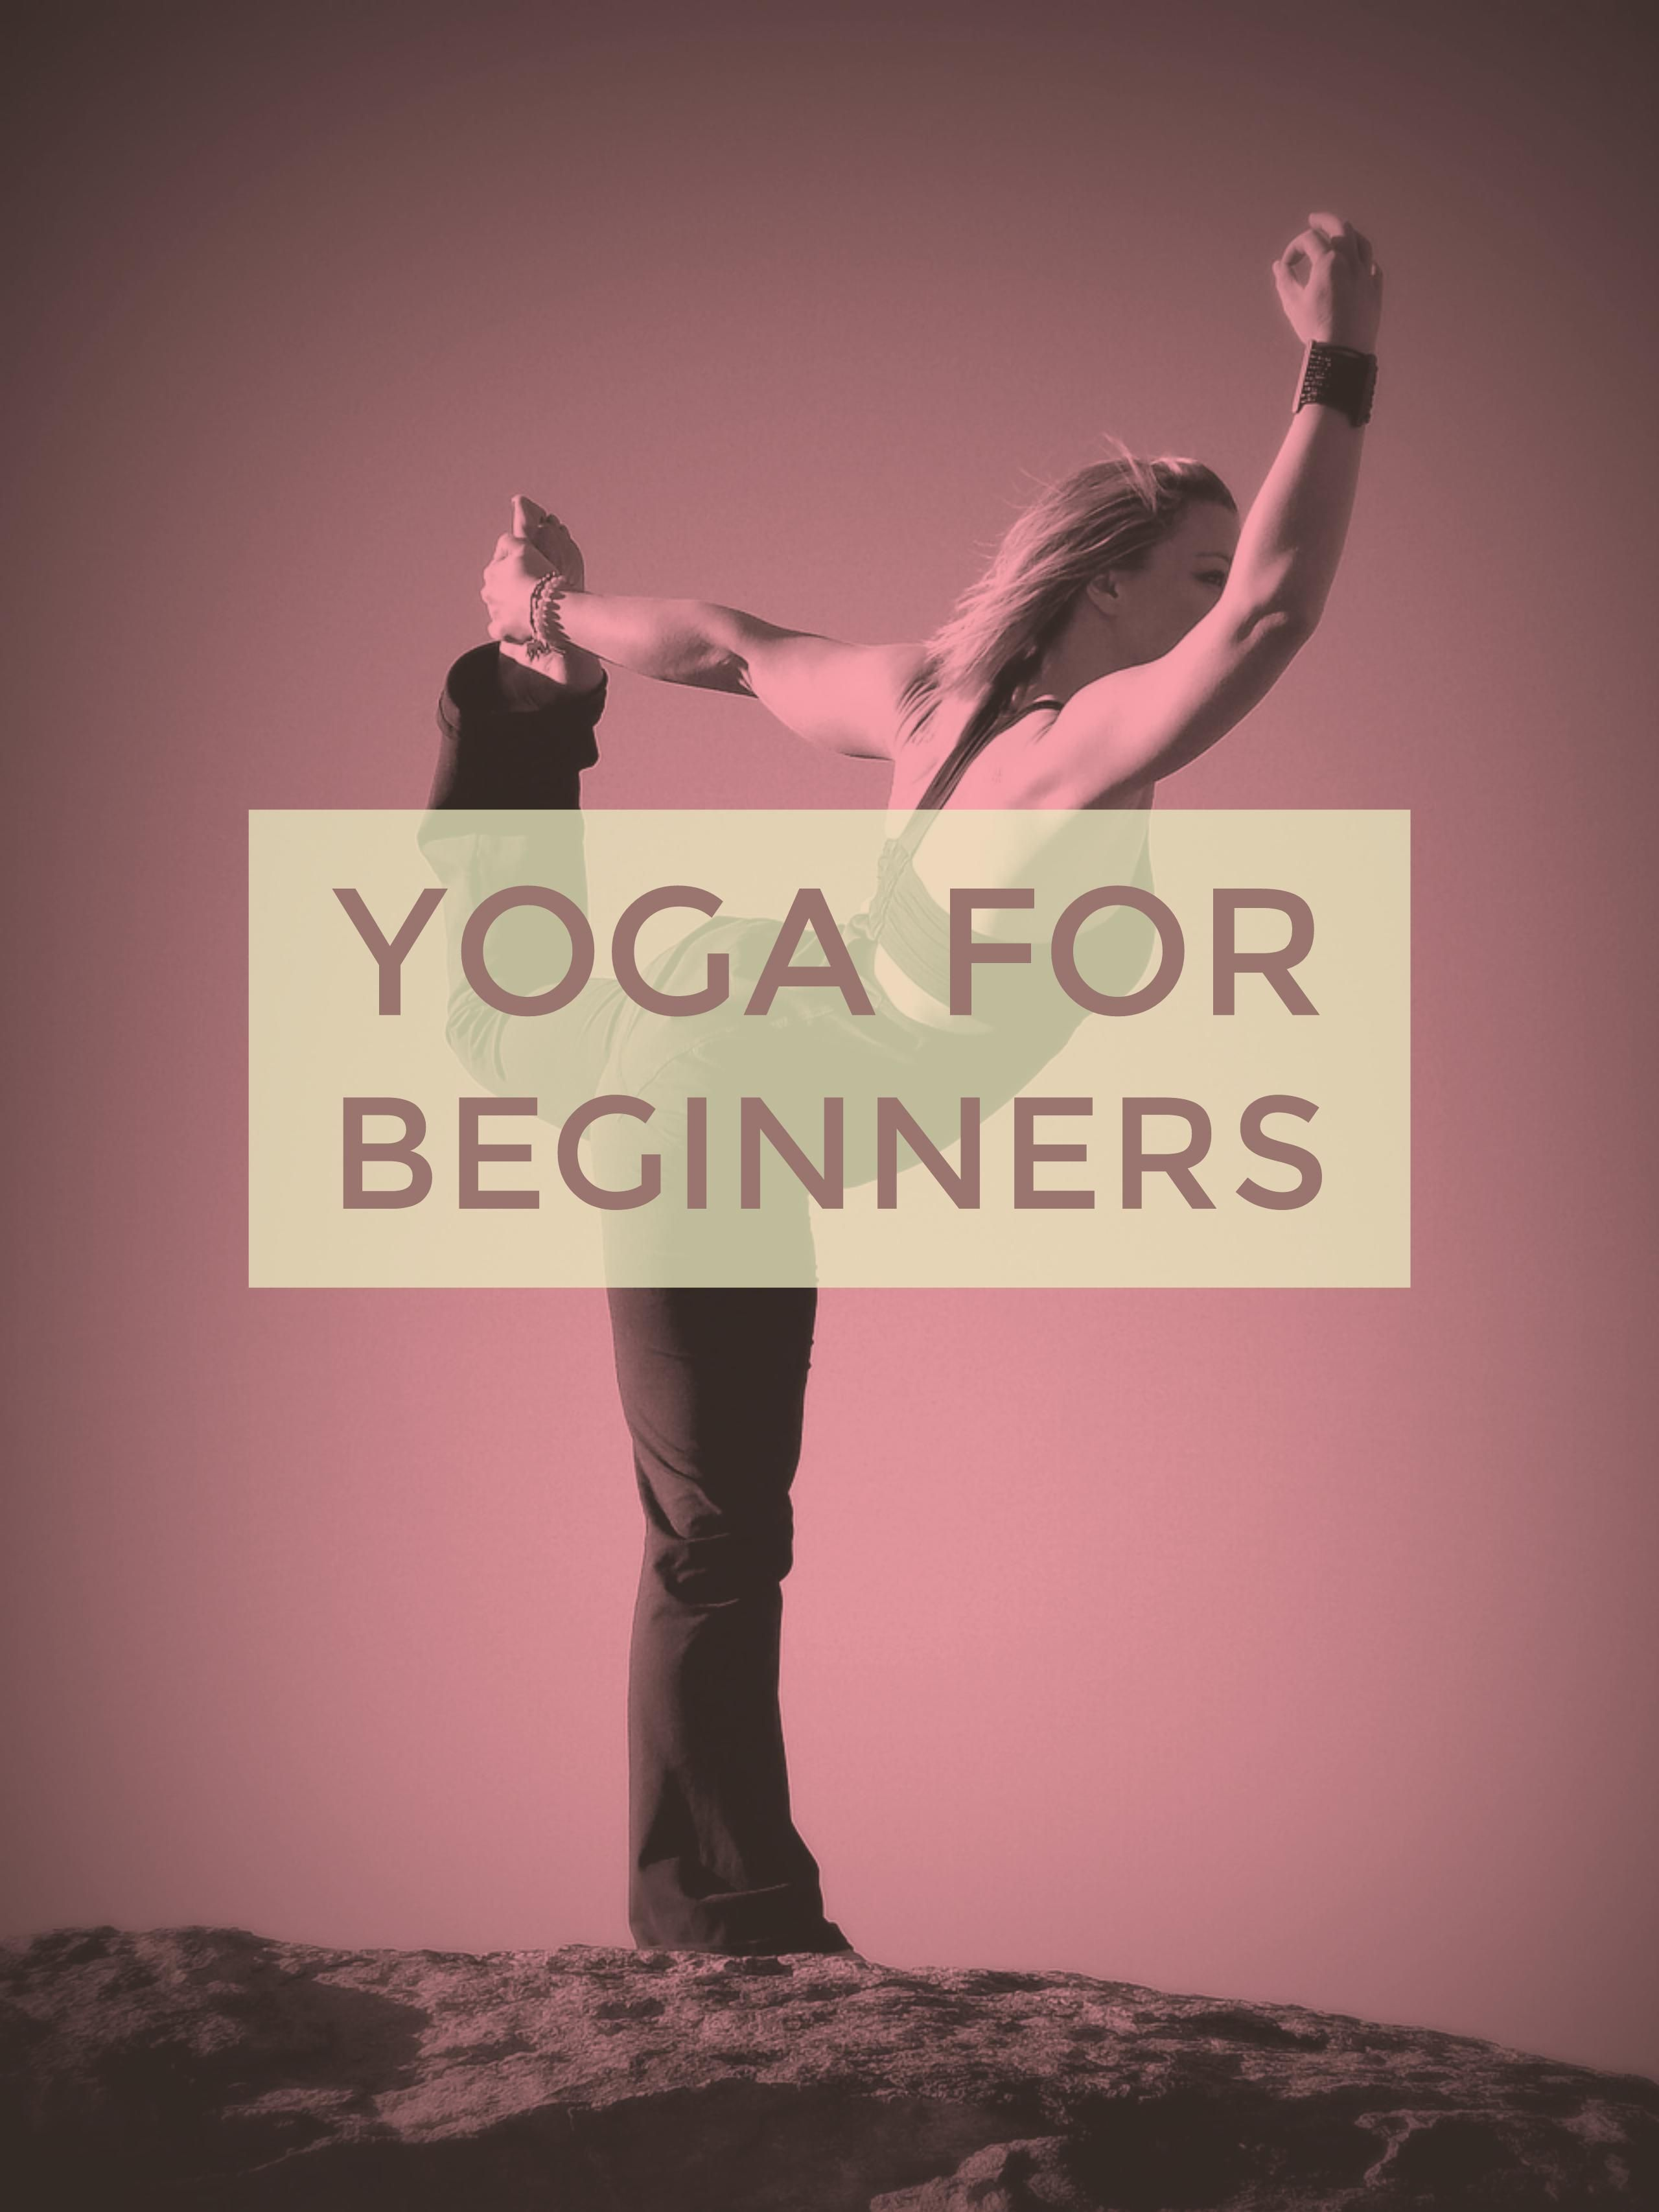 Yoga workouts, routines, tips and advice for beginners. - Weightloss・Toning・Sleep・Stress・Strength